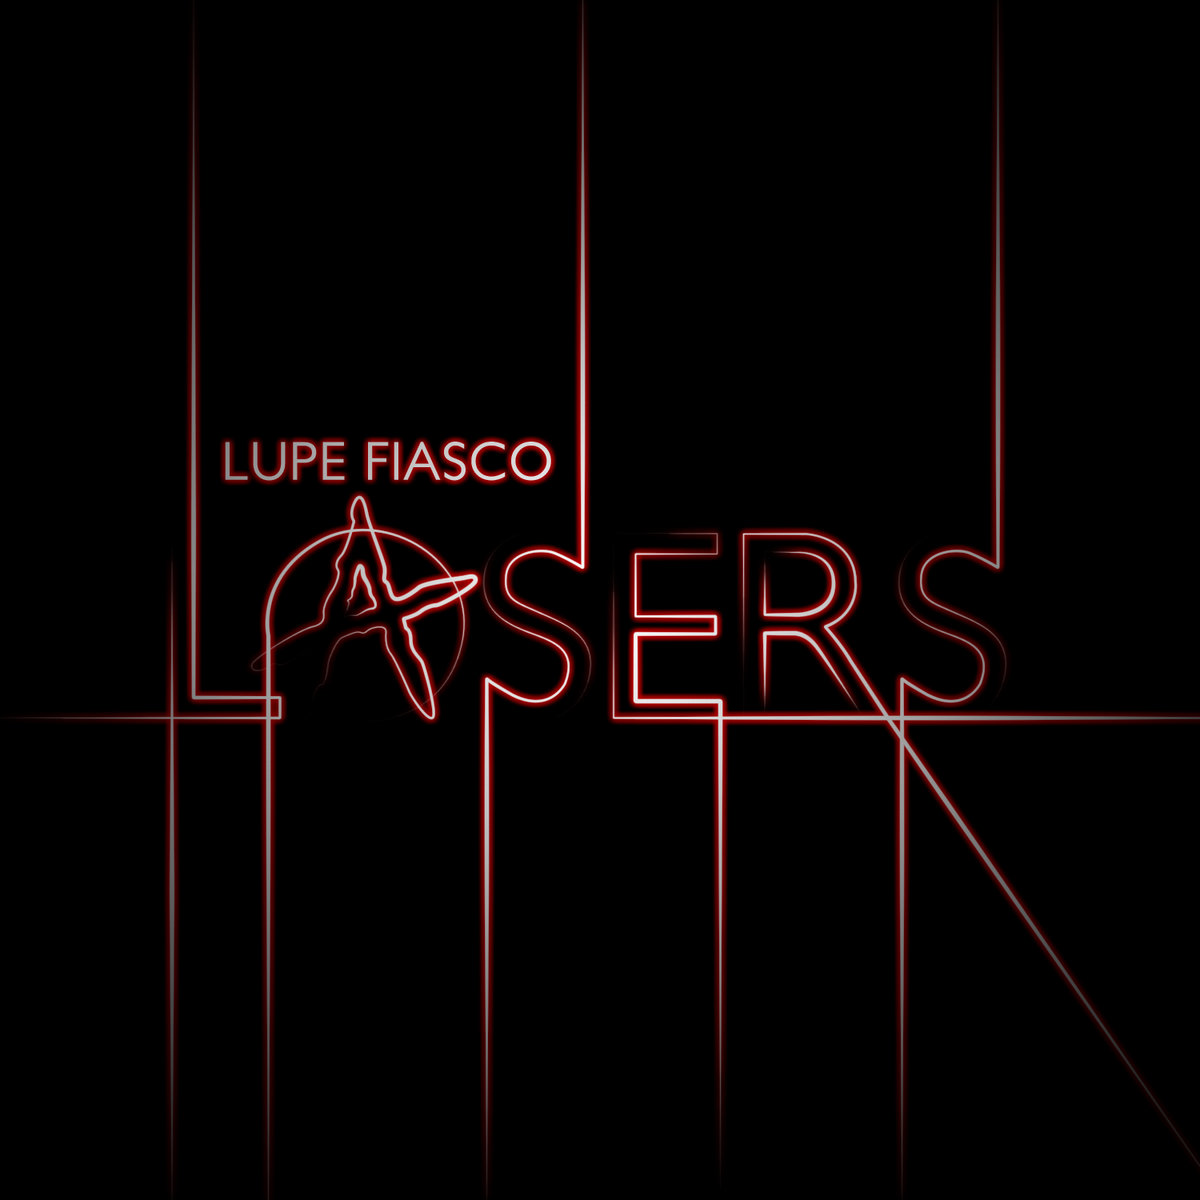 lasers lupe fiasco track list - HD1024×1024